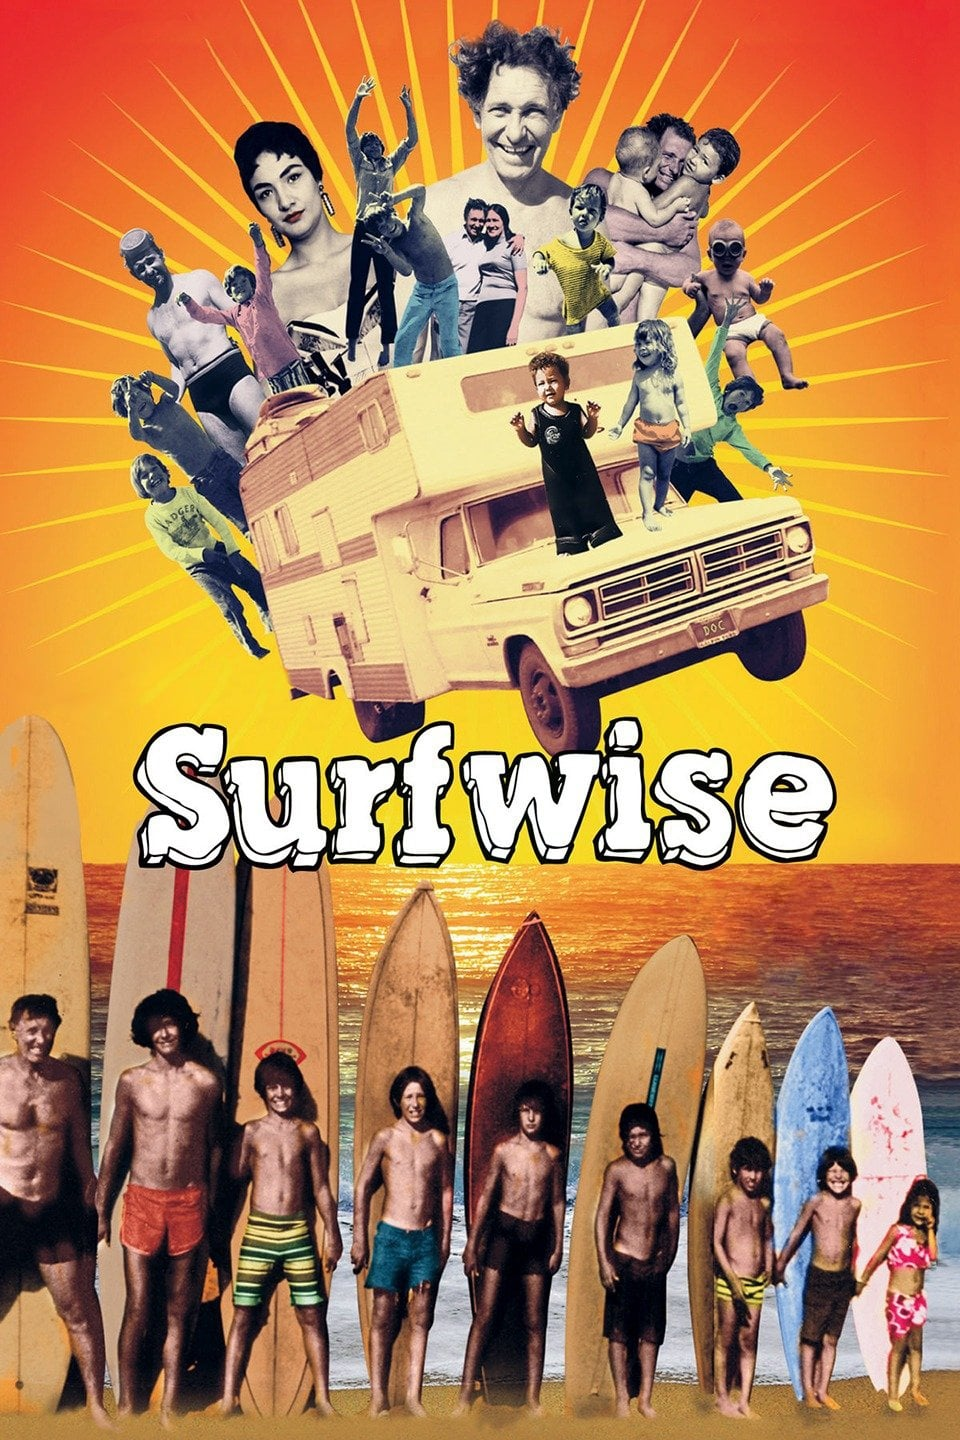 Surfwise on FREECABLE TV